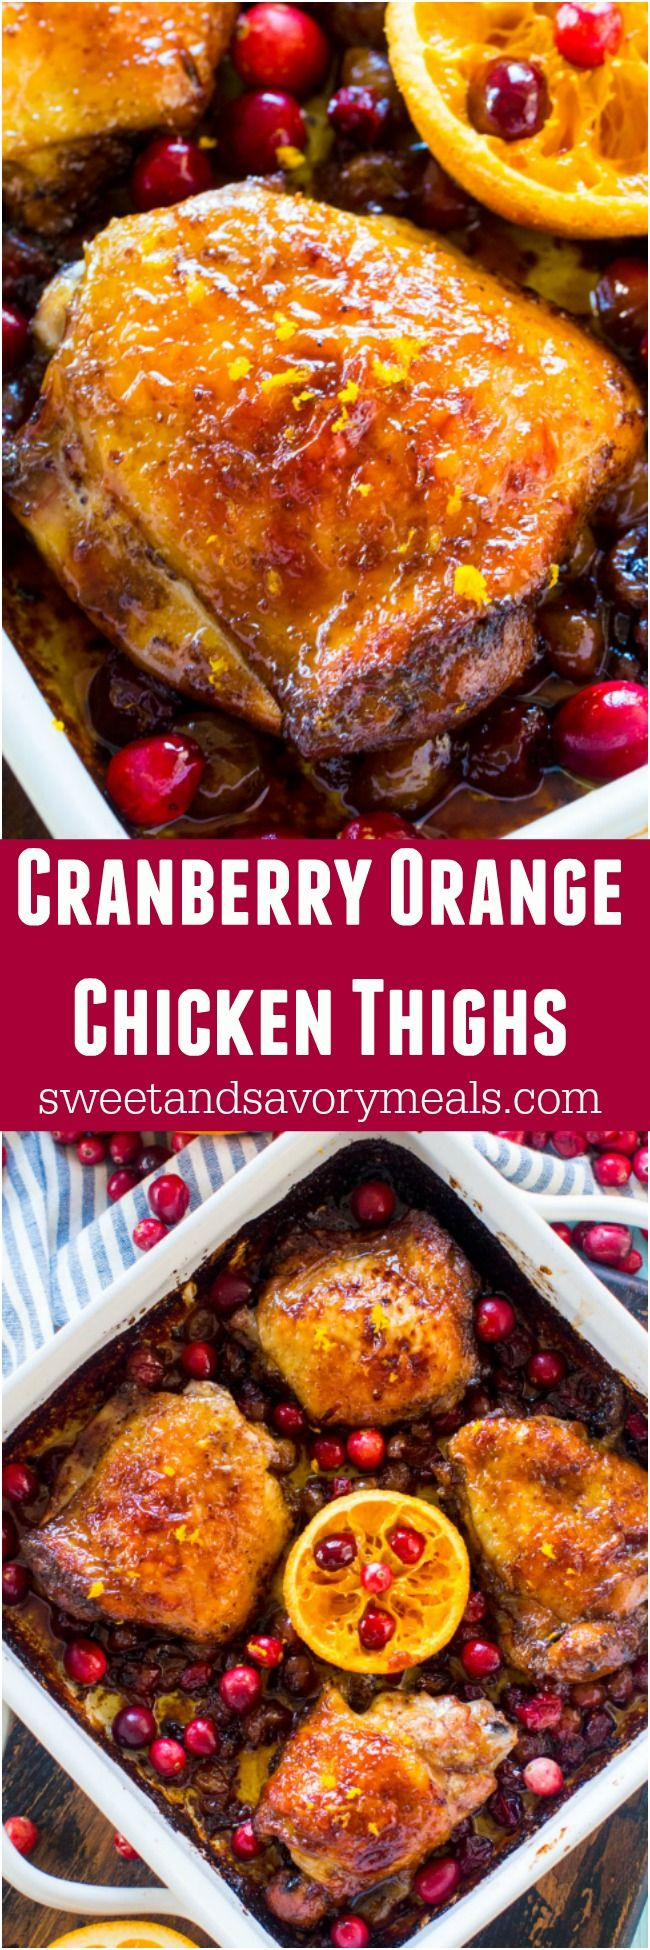 Cranberry Orange Chicken is the perfect, one pan, seasonal meal made with juicy, tart cranberries and fresh orange juice and zest. #chicken #onepan #cranberries